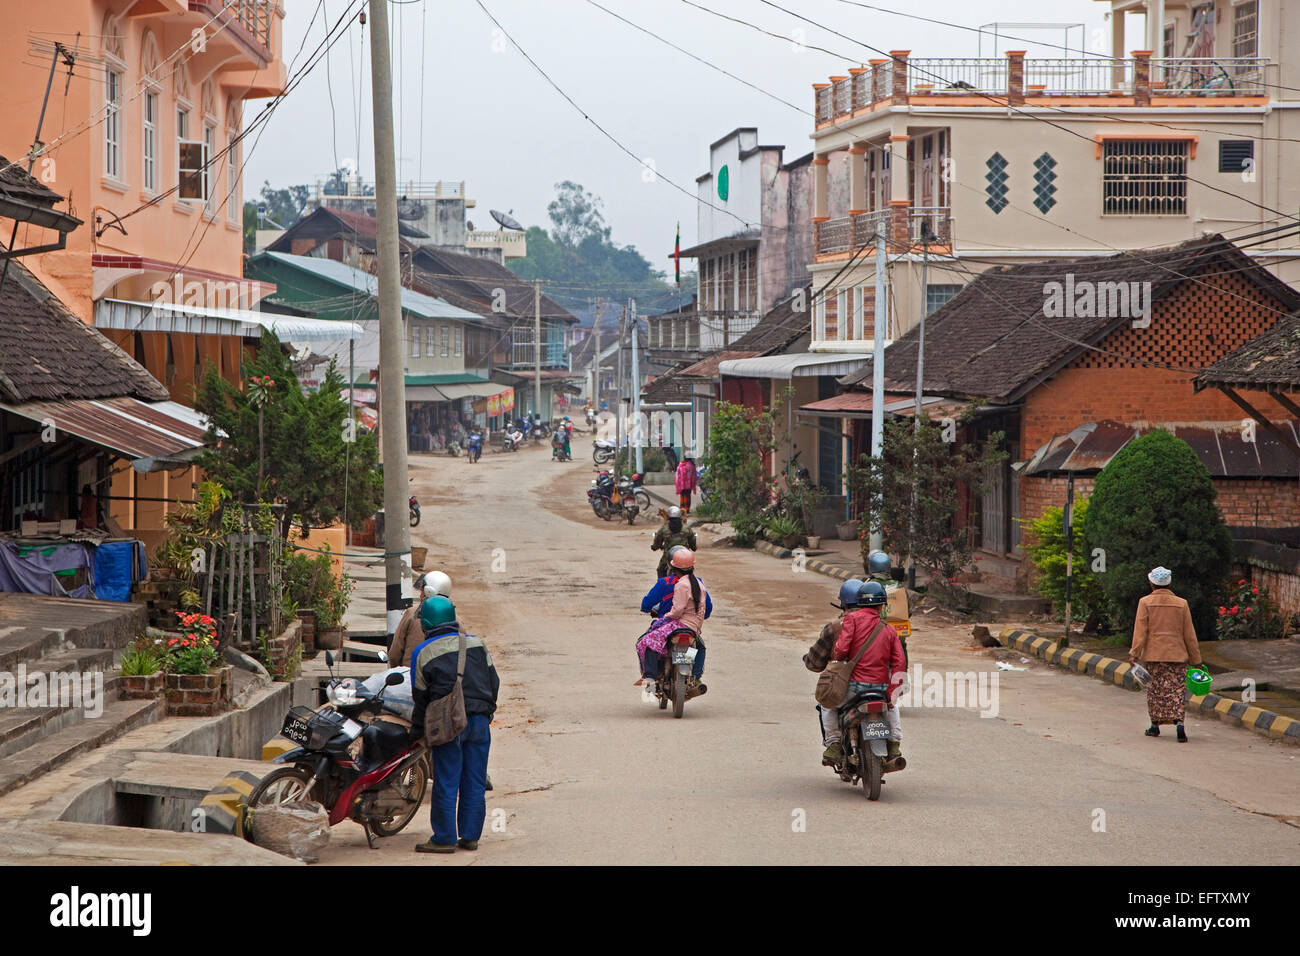 Motorcycles riding through the town Keng Tung / Kengtung, Shan State, Myanmar / Burma - Stock Image